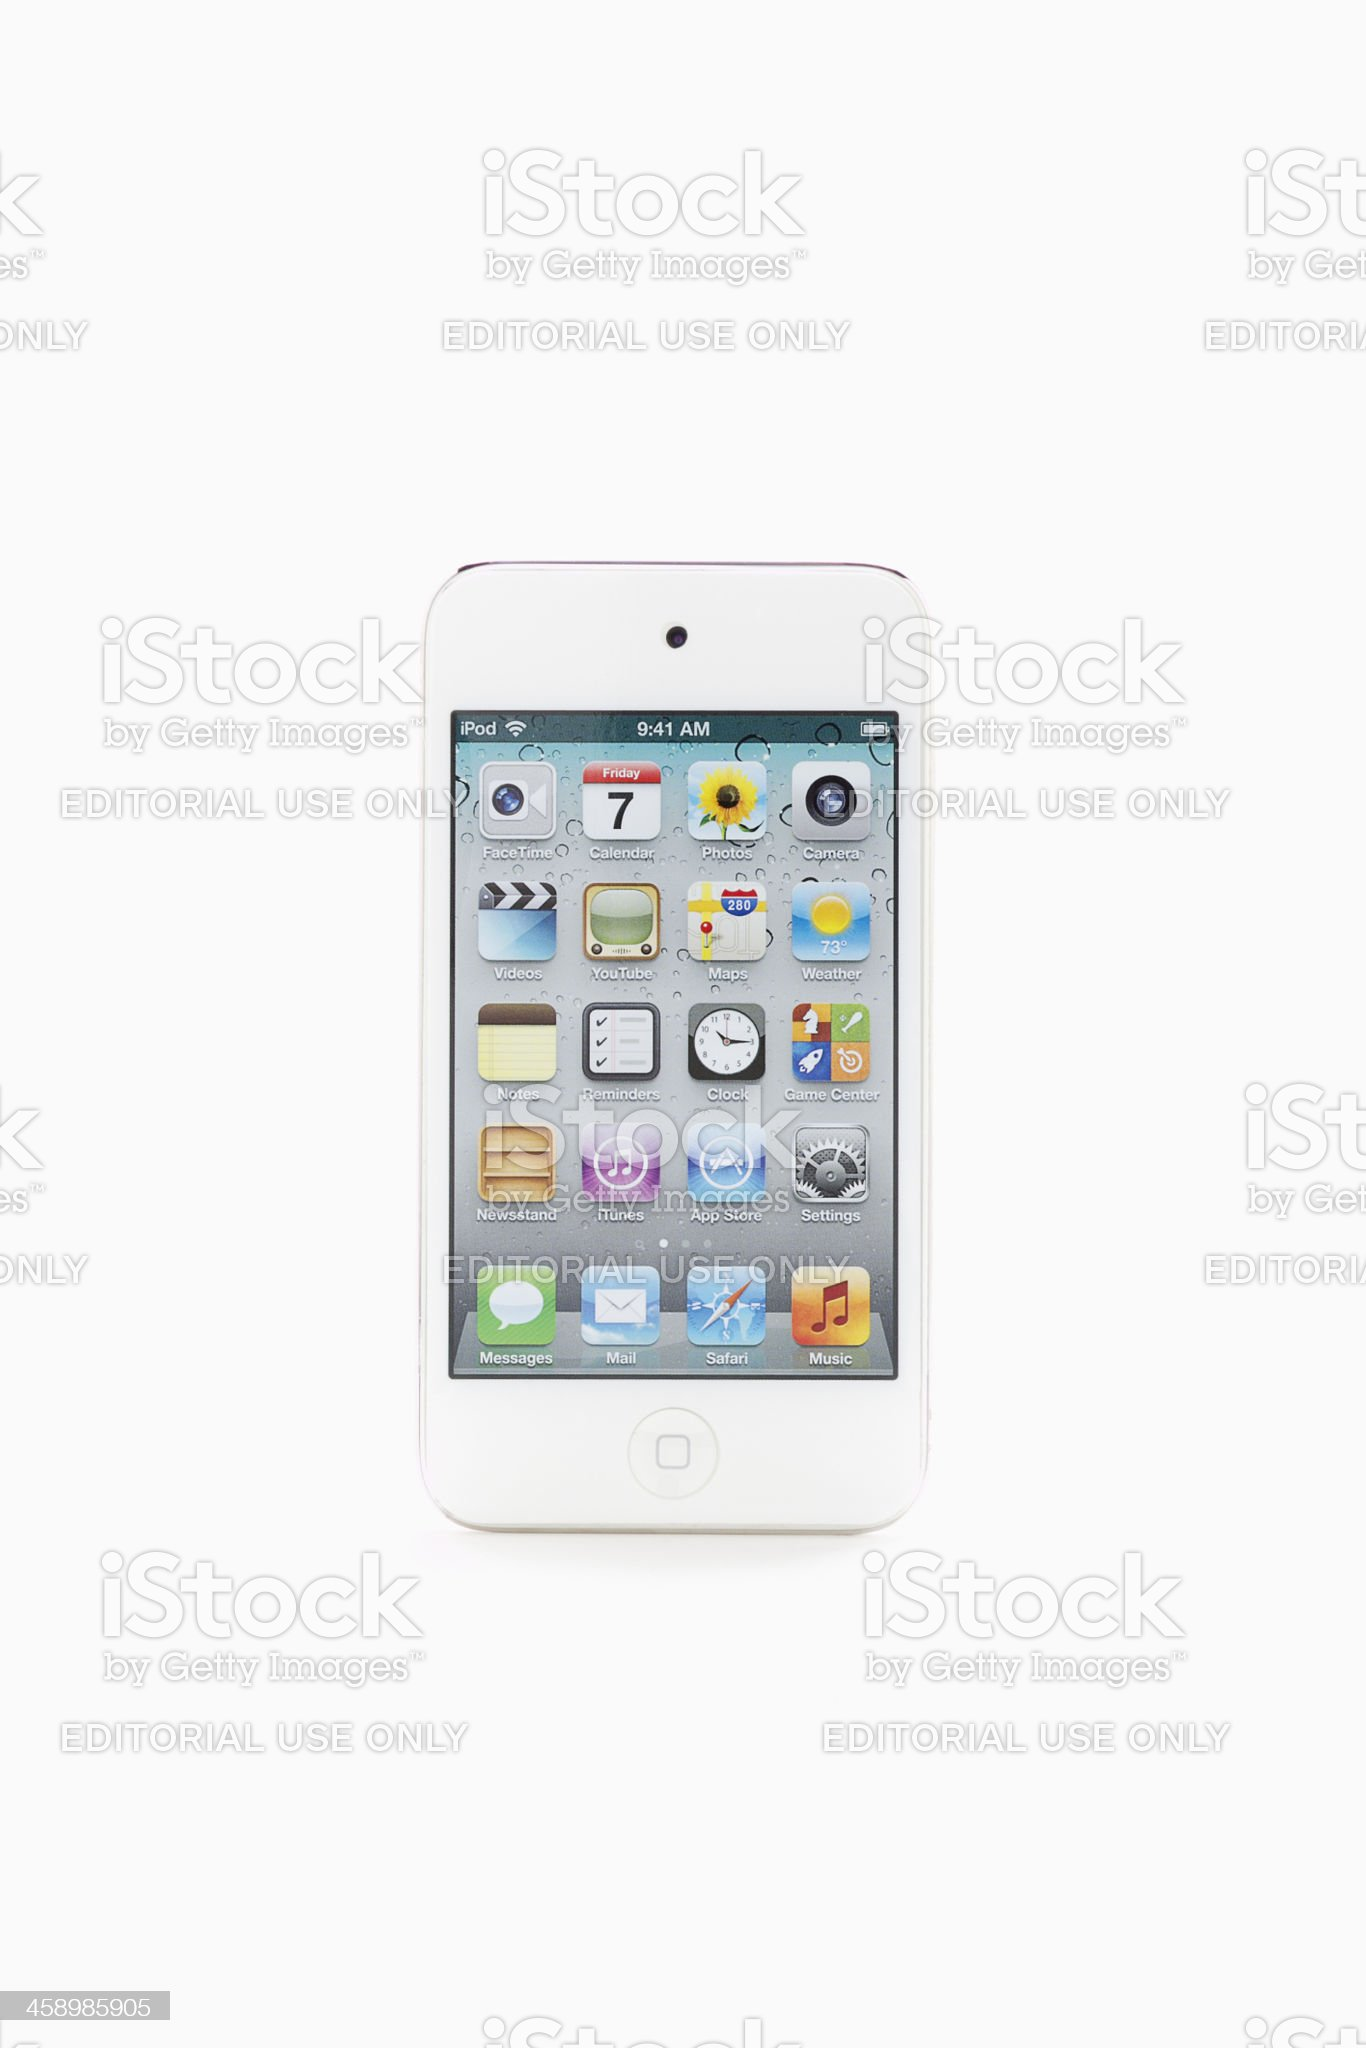 iPod Touch royalty-free stock photo